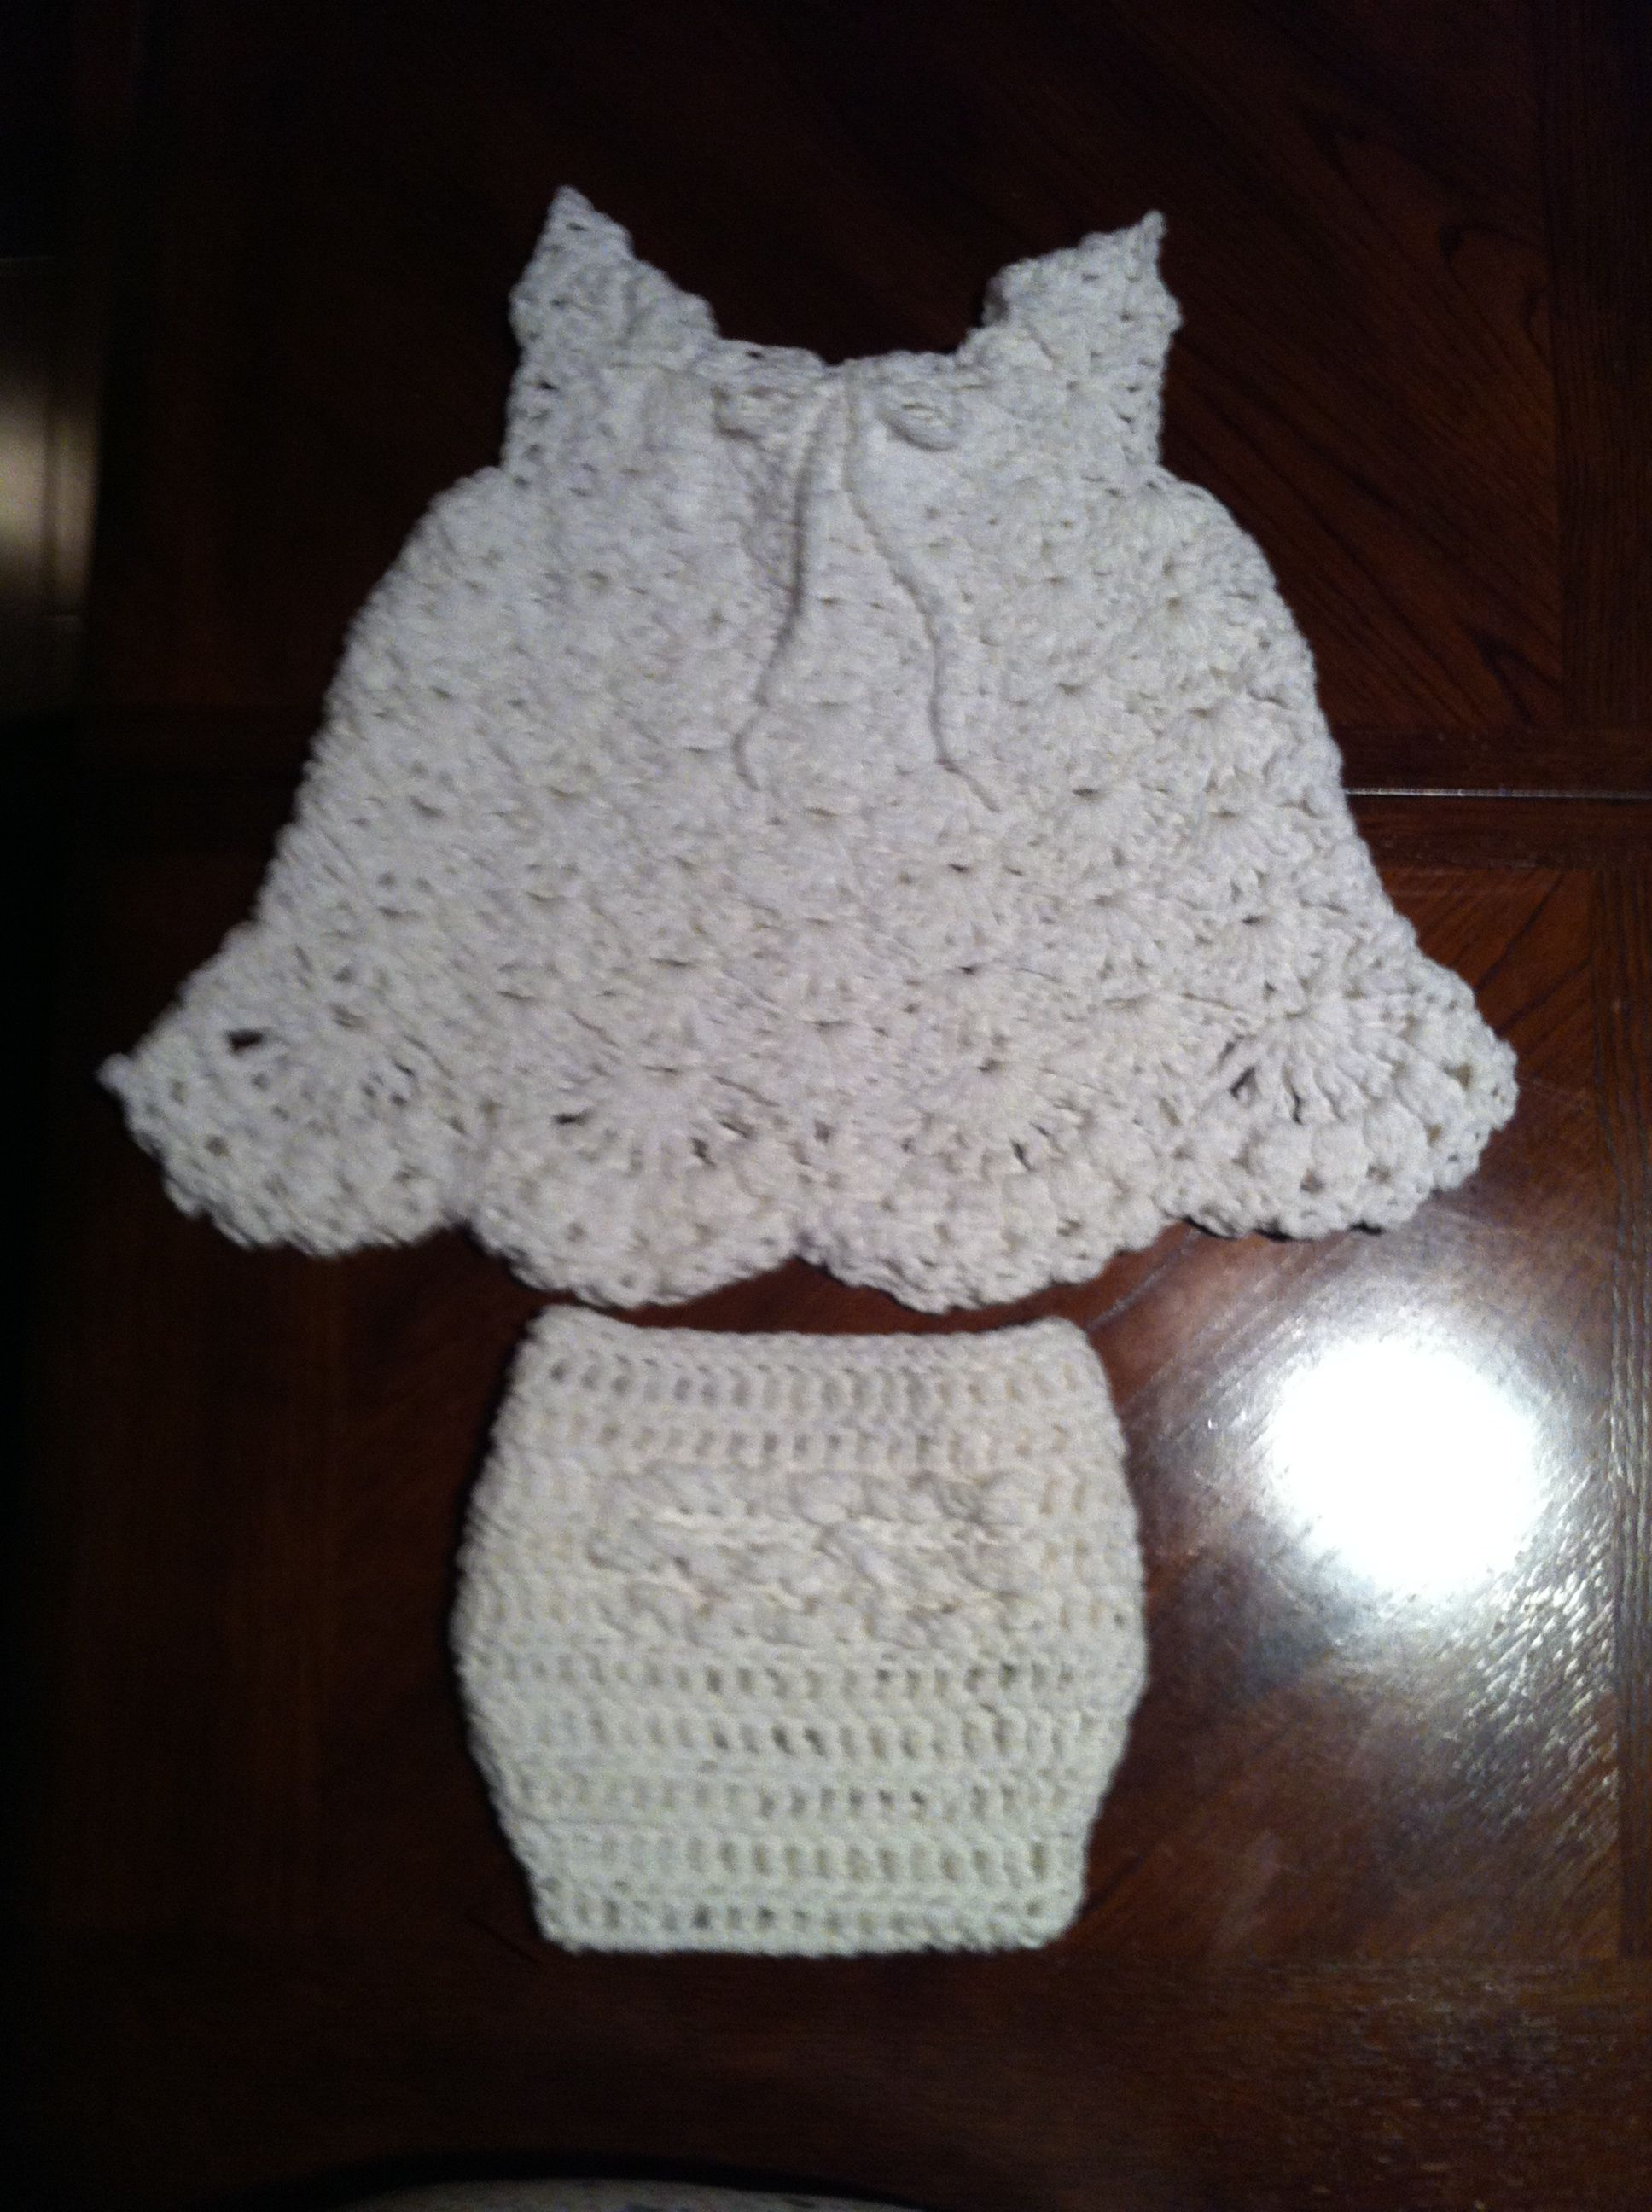 Crochet Ruffled Baby Dress Pattern : Shell Baby Dress with Diaper Cover 100% Cotton Pattern ...